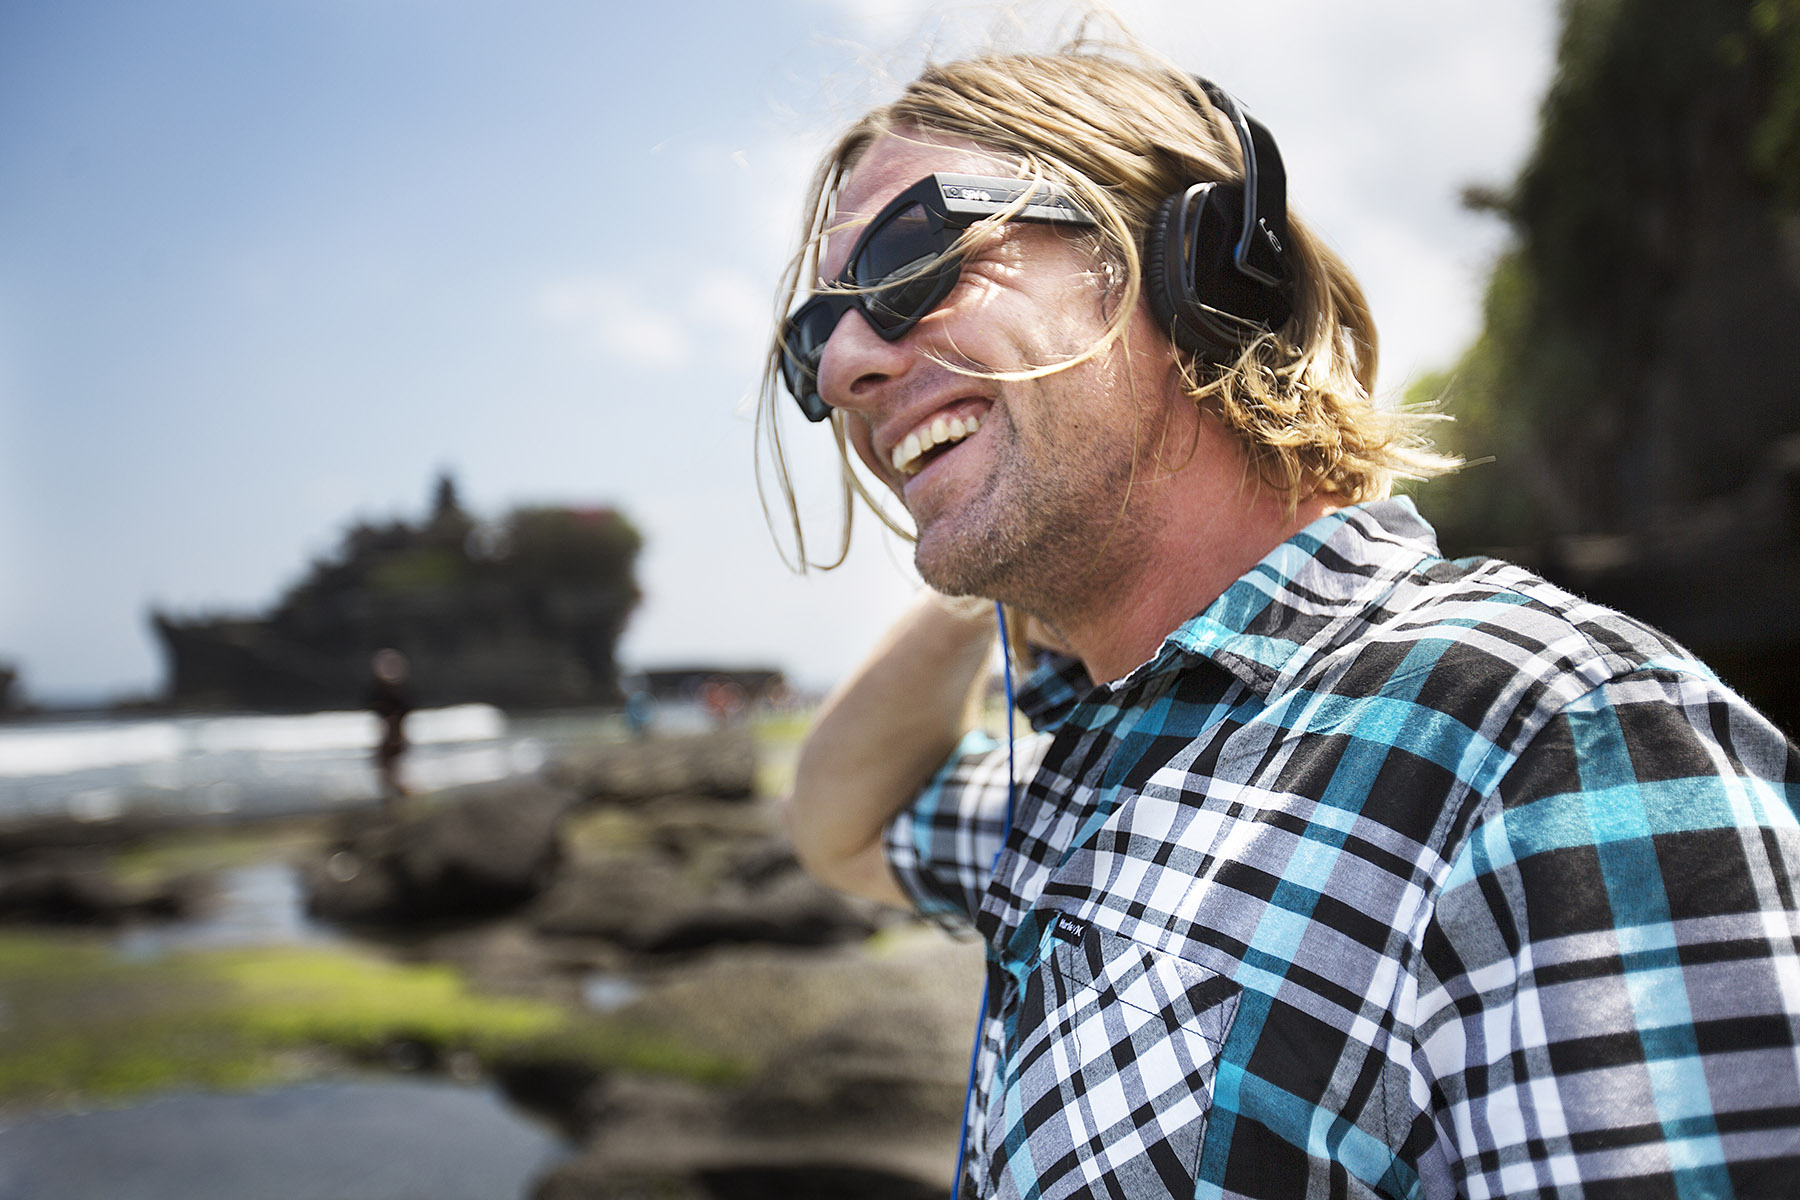 Switchfoot in Bali for Ultimate Ears by Boston based commercial lifestyle photographer Brian Nevins